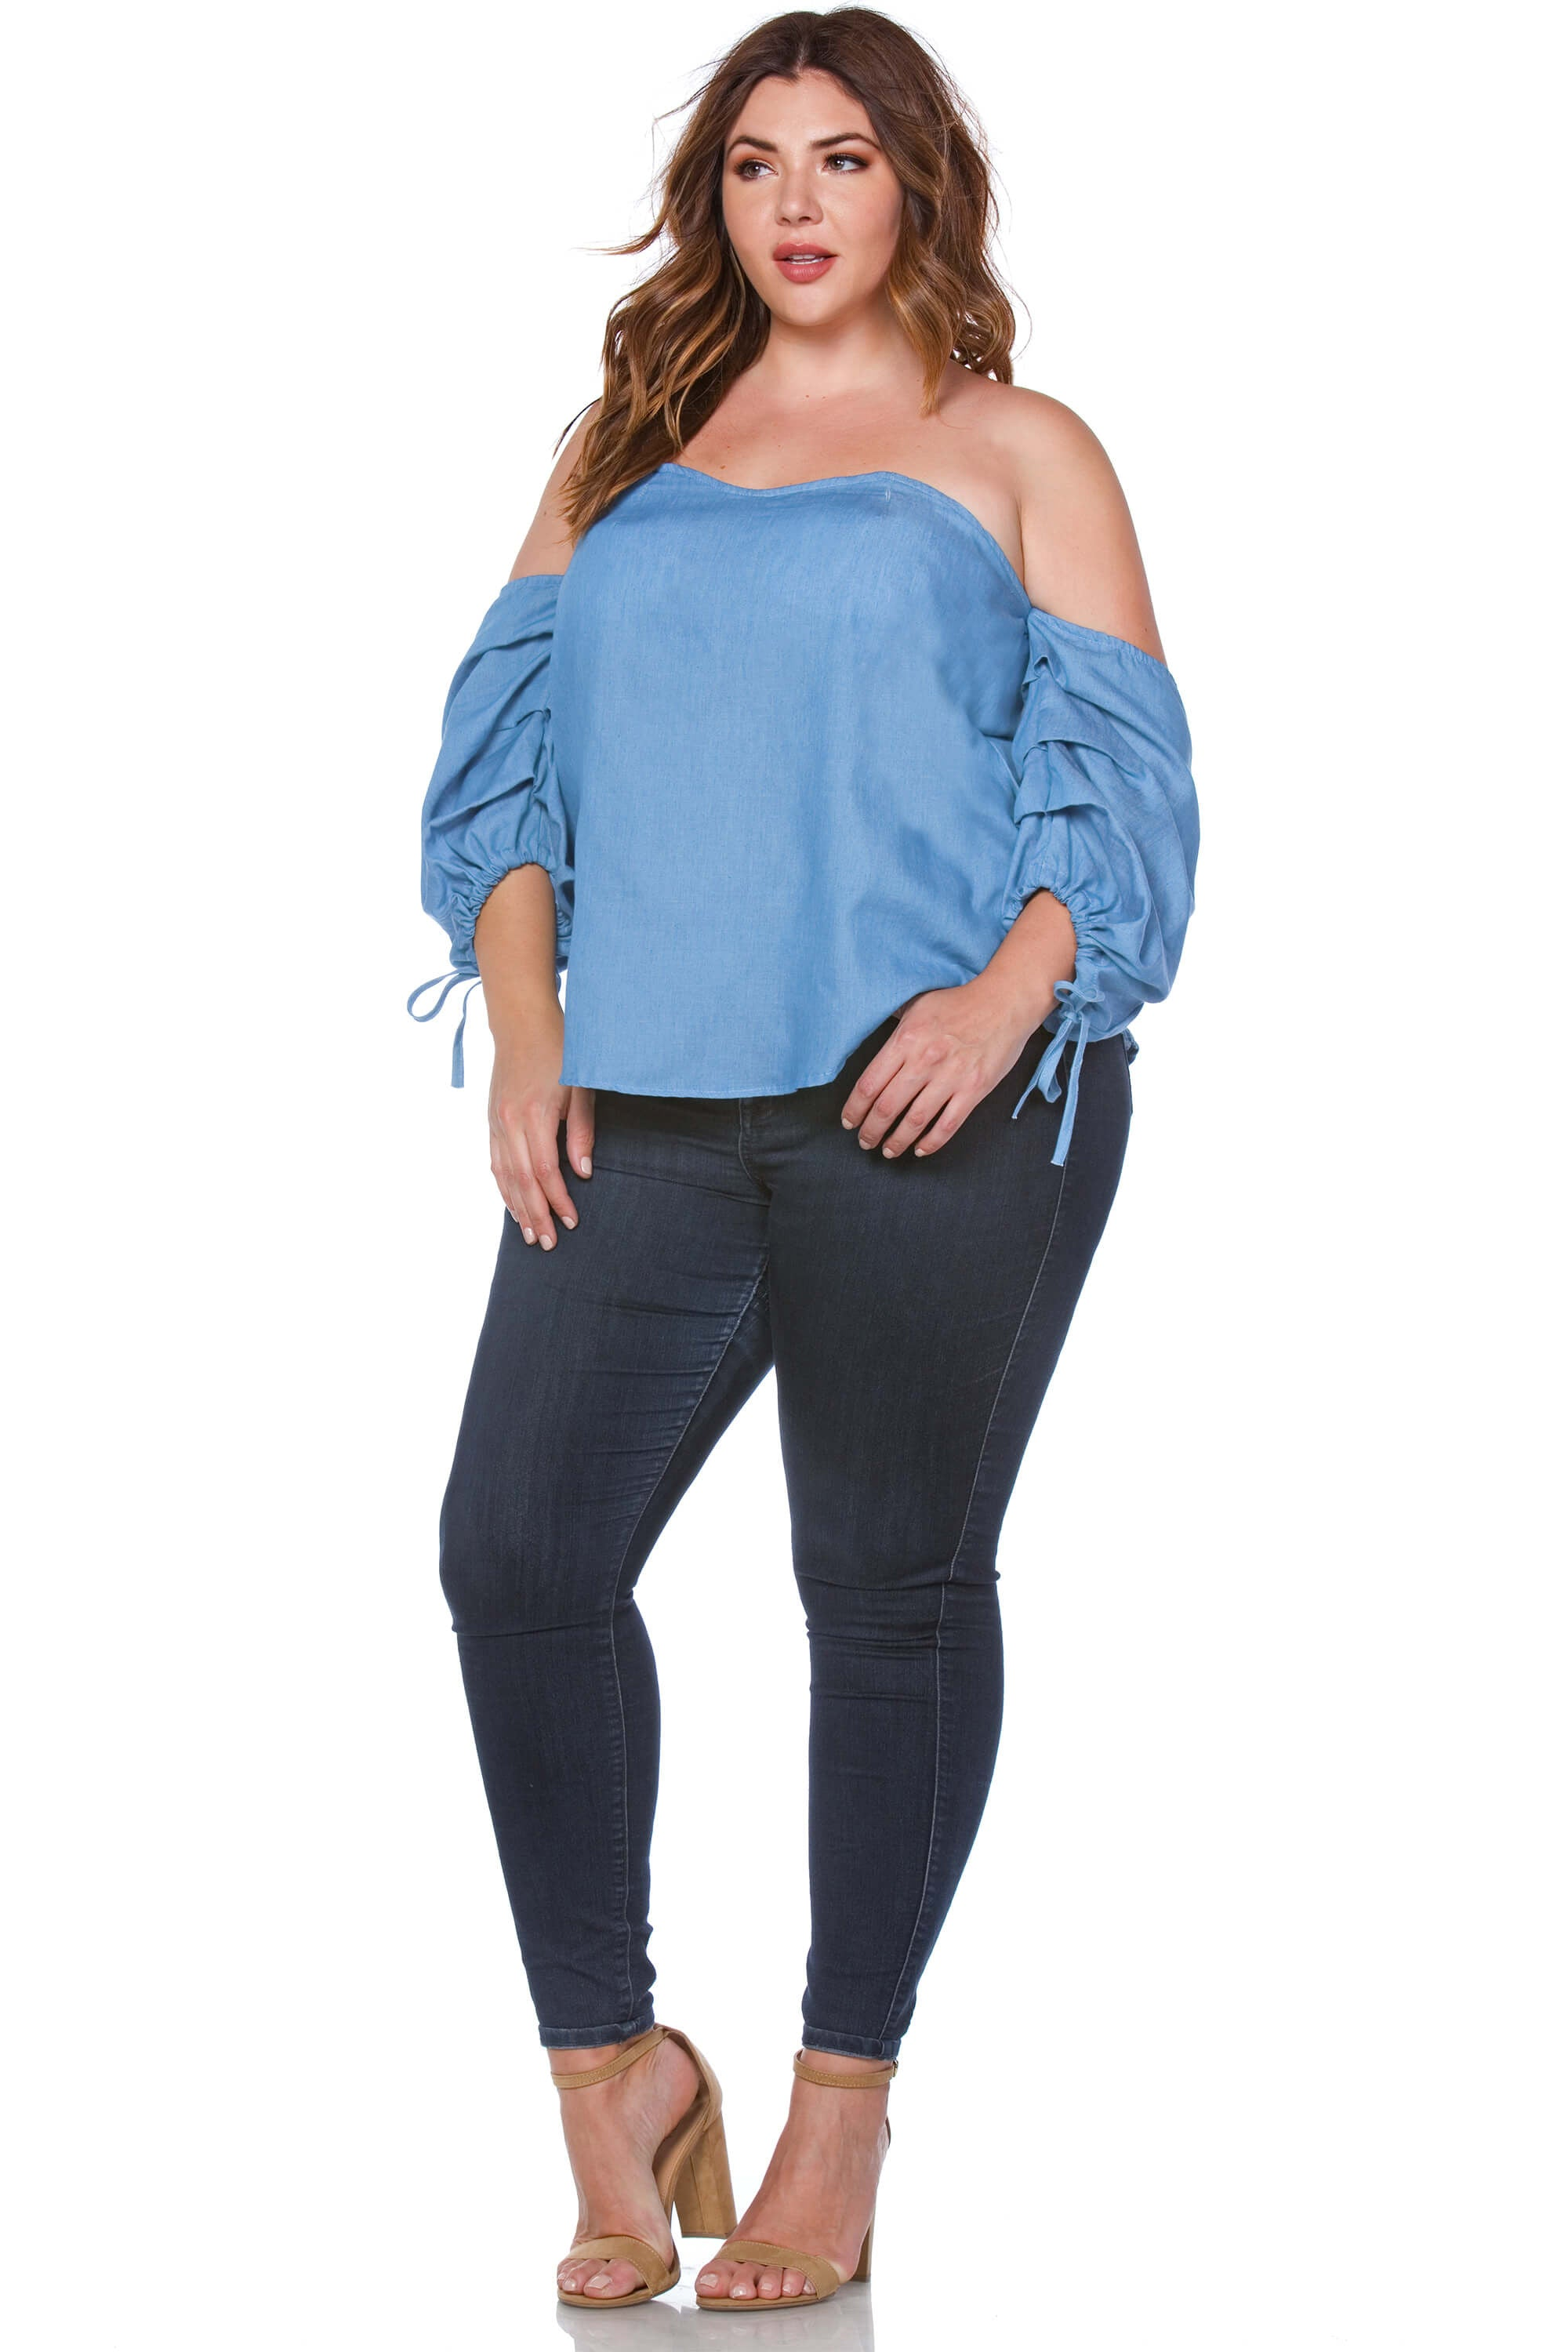 Harley Plus Size Off the Shoulder Blouse for Women